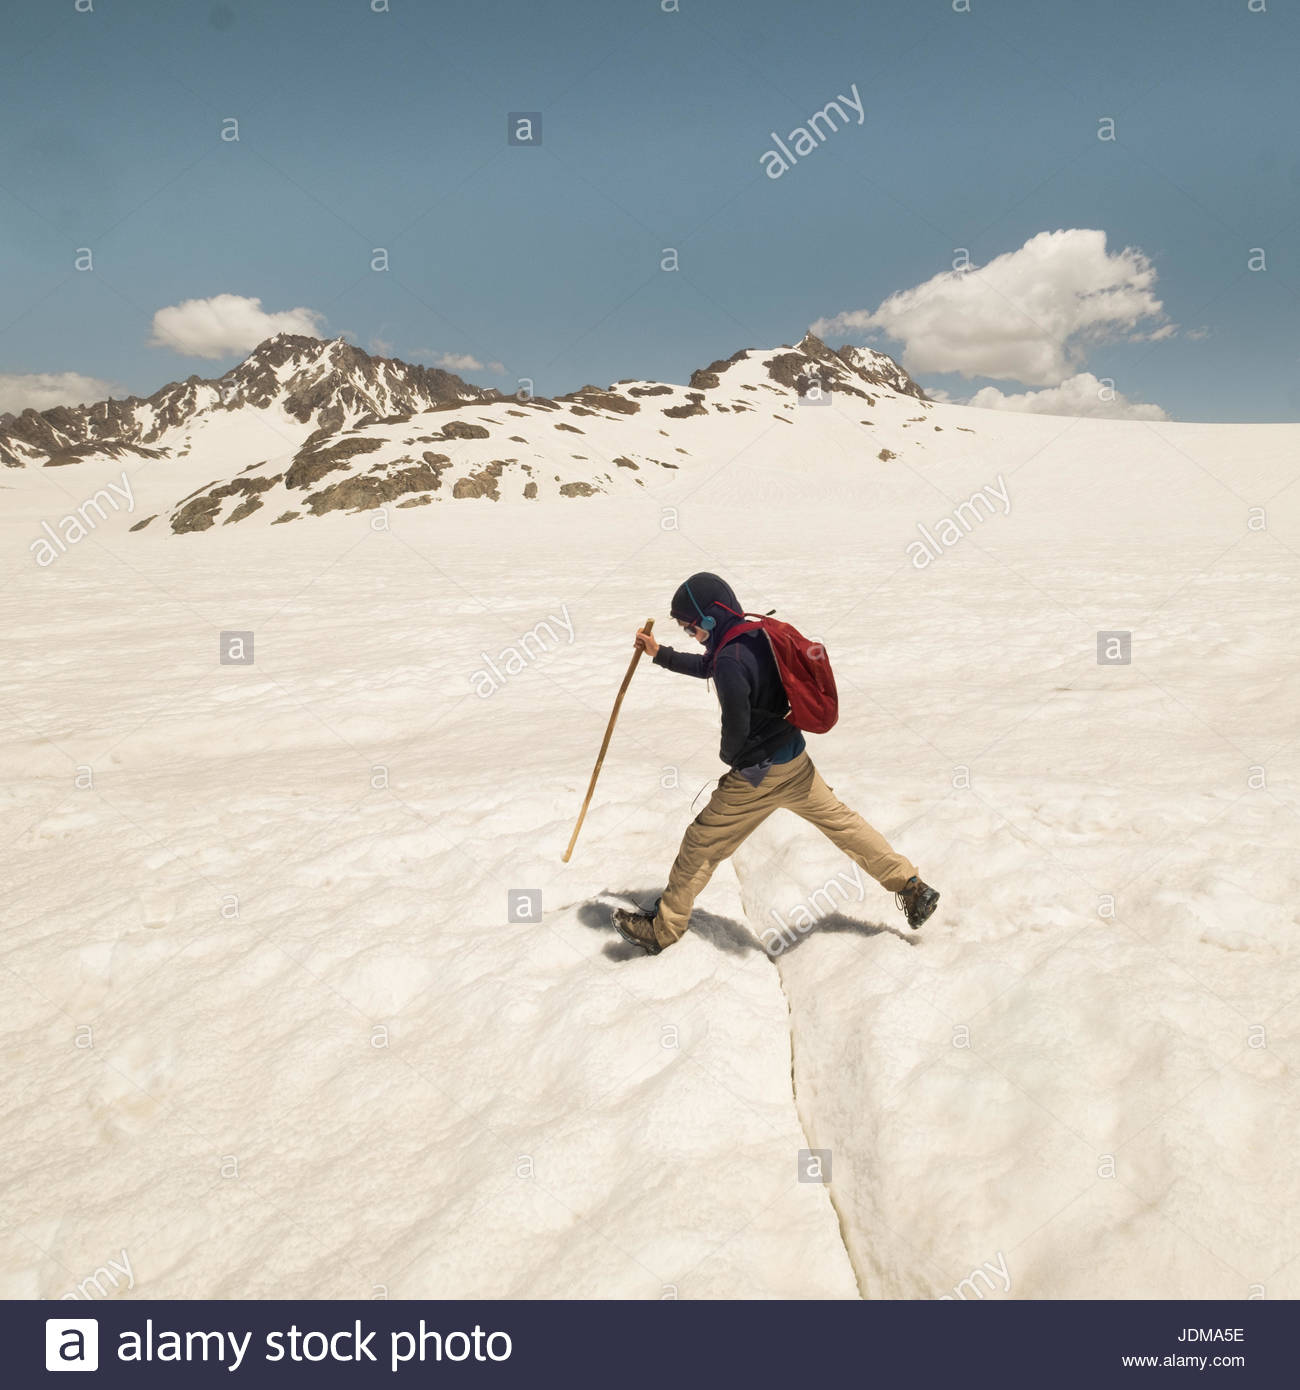 A European boy jumps over a small crevasse on a glacier in the mountains. - Stock Image